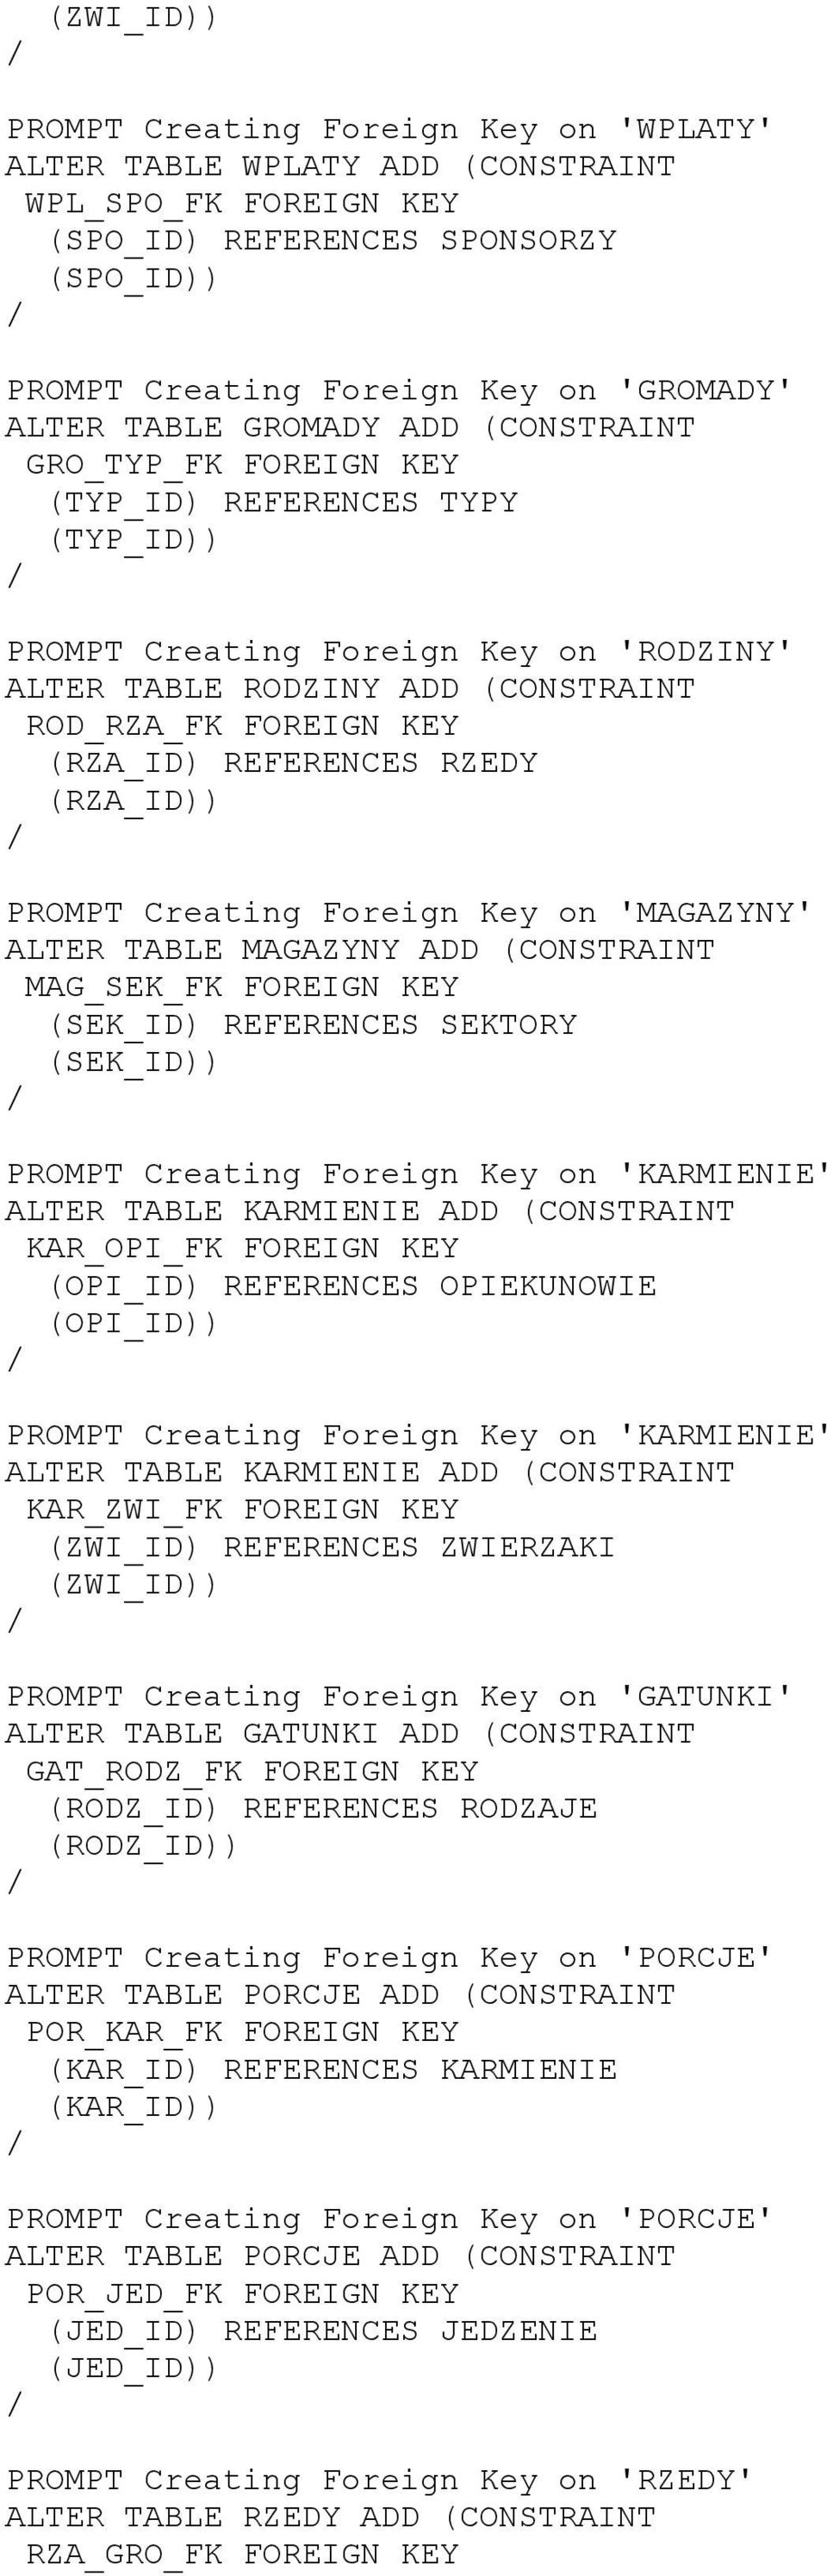 RZEDY (RZA_ID PROMPT Creating Foreign Key on 'MAGAZYNY' ALTER TABLE MAGAZYNY ADD (CONSTRAINT MAG_SEK_FK FOREIGN KEY (SEK_ID REFERENCES SEKTORY (SEK_ID PROMPT Creating Foreign Key on 'KARMIENIE' ALTER